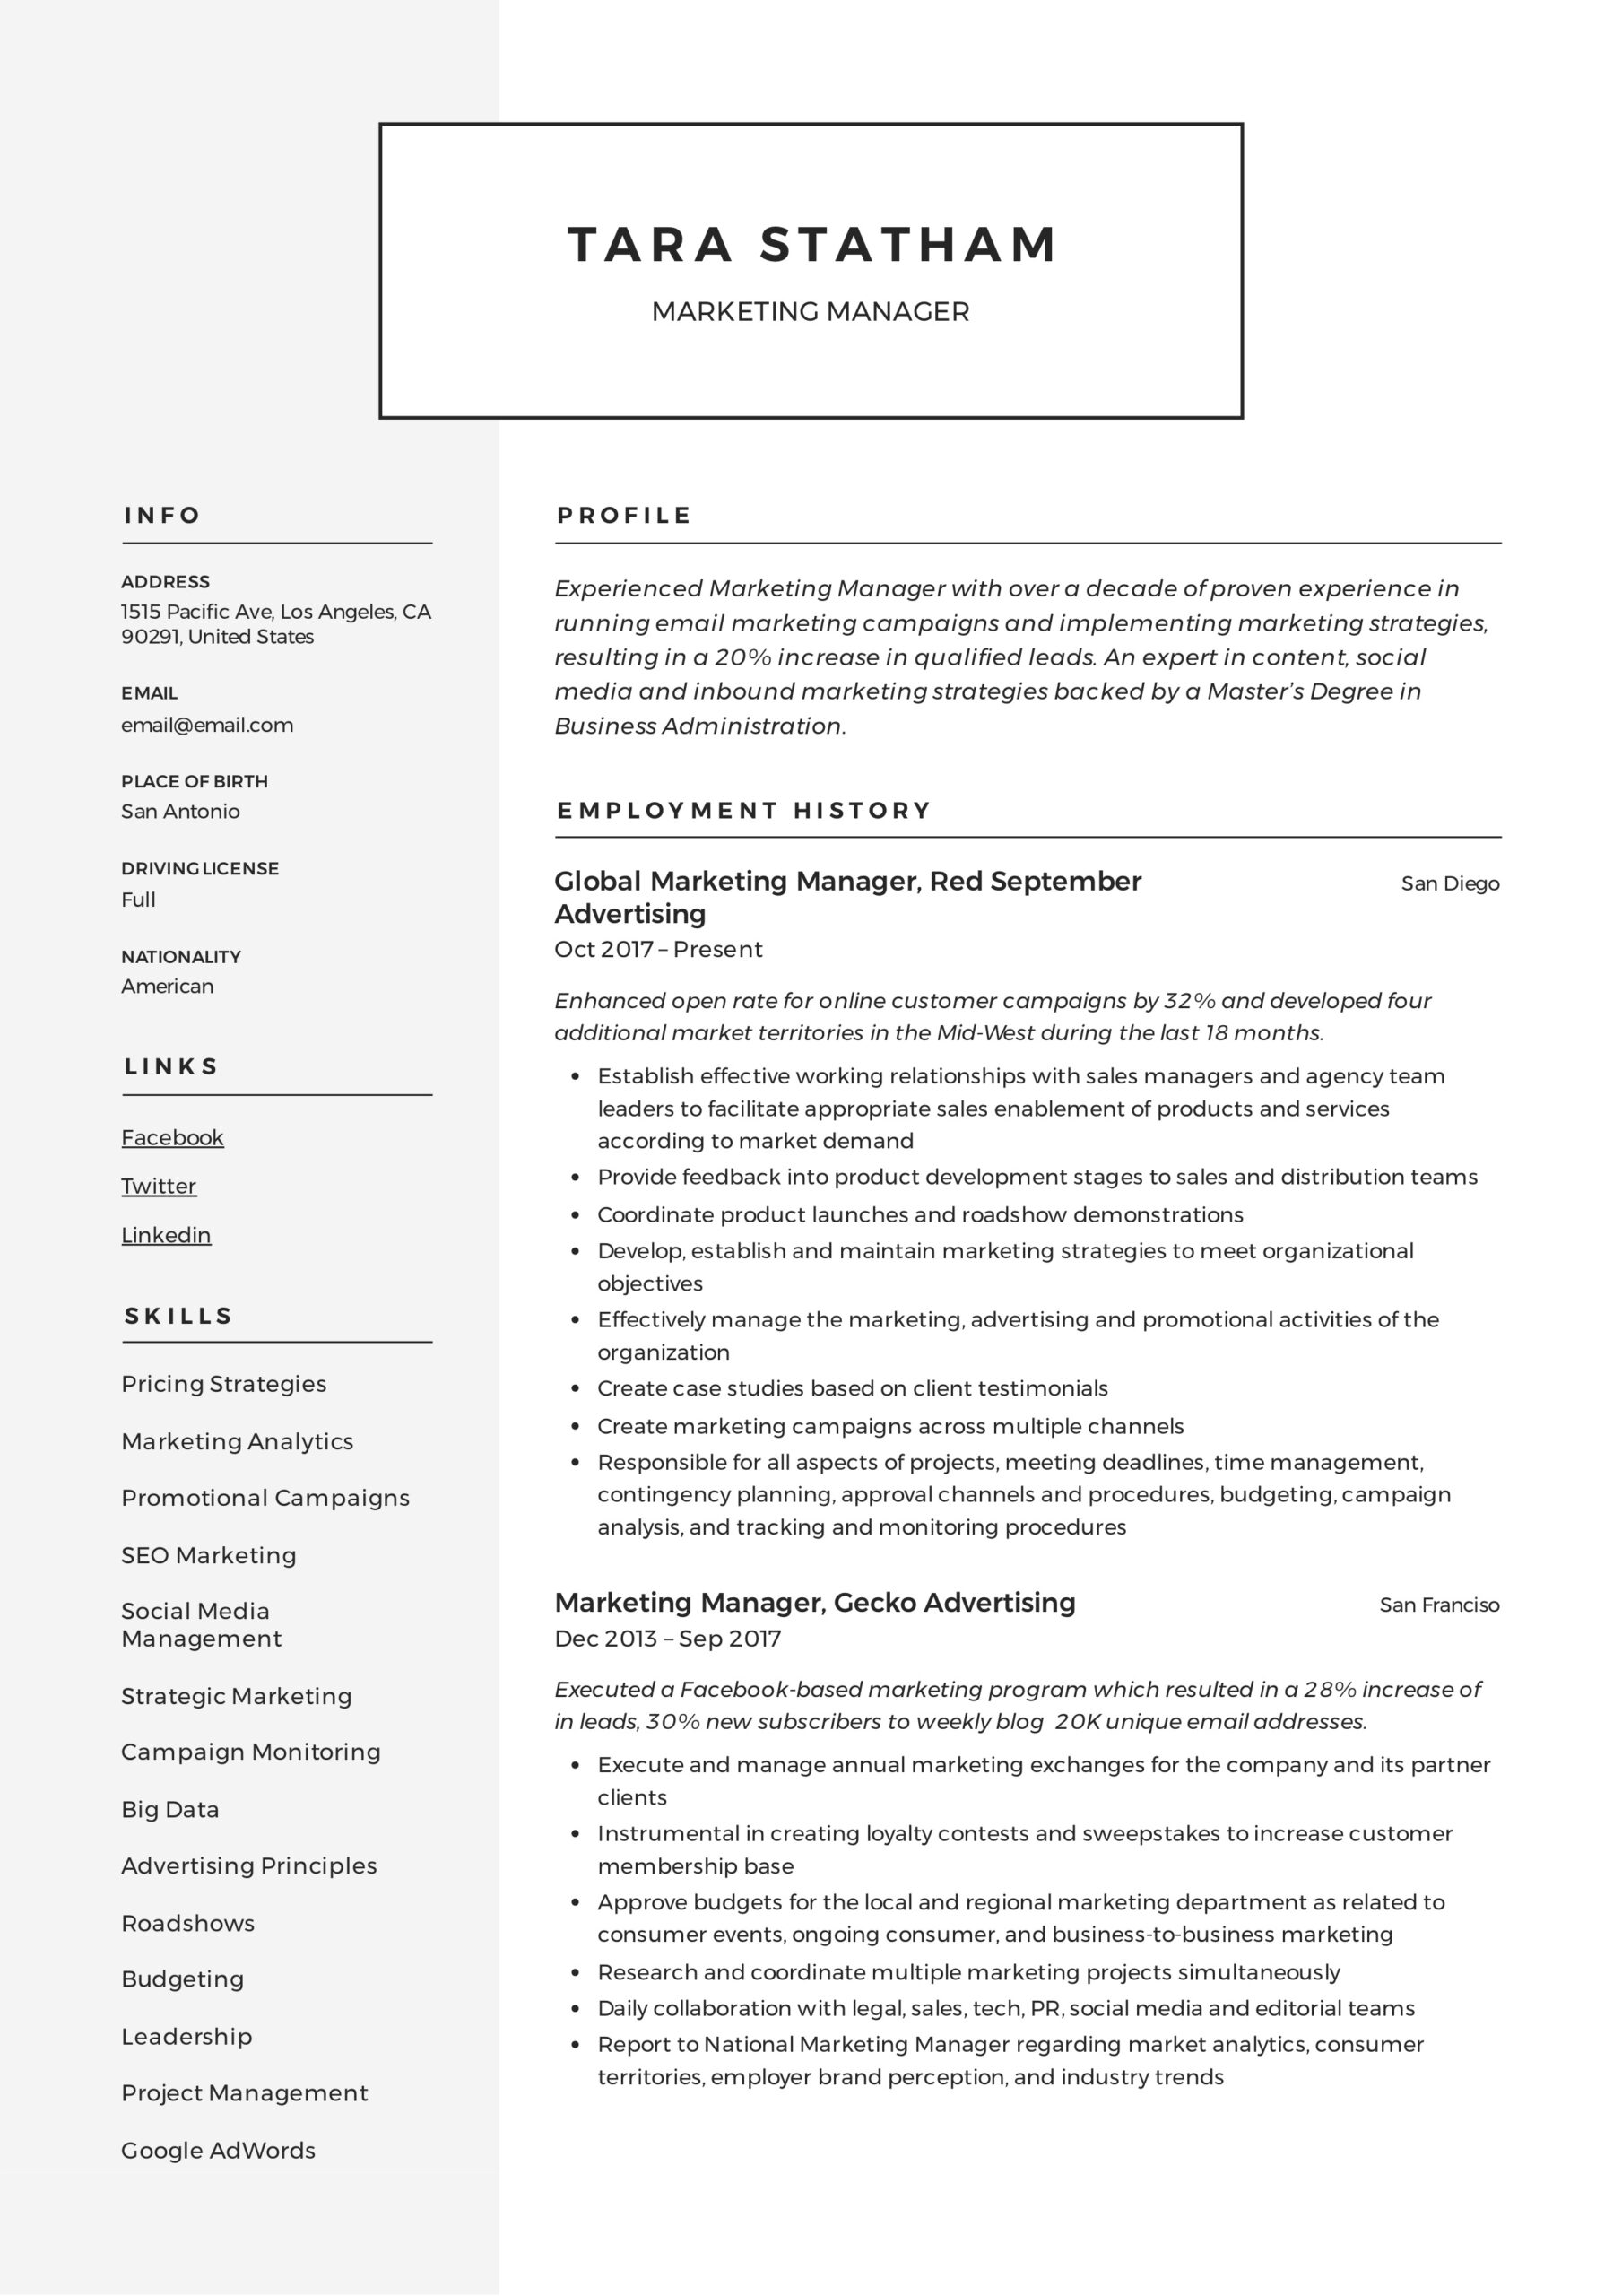 marketing manager resume writing guide templates tara statham filler content pmo business Resume Marketing Manager Resume